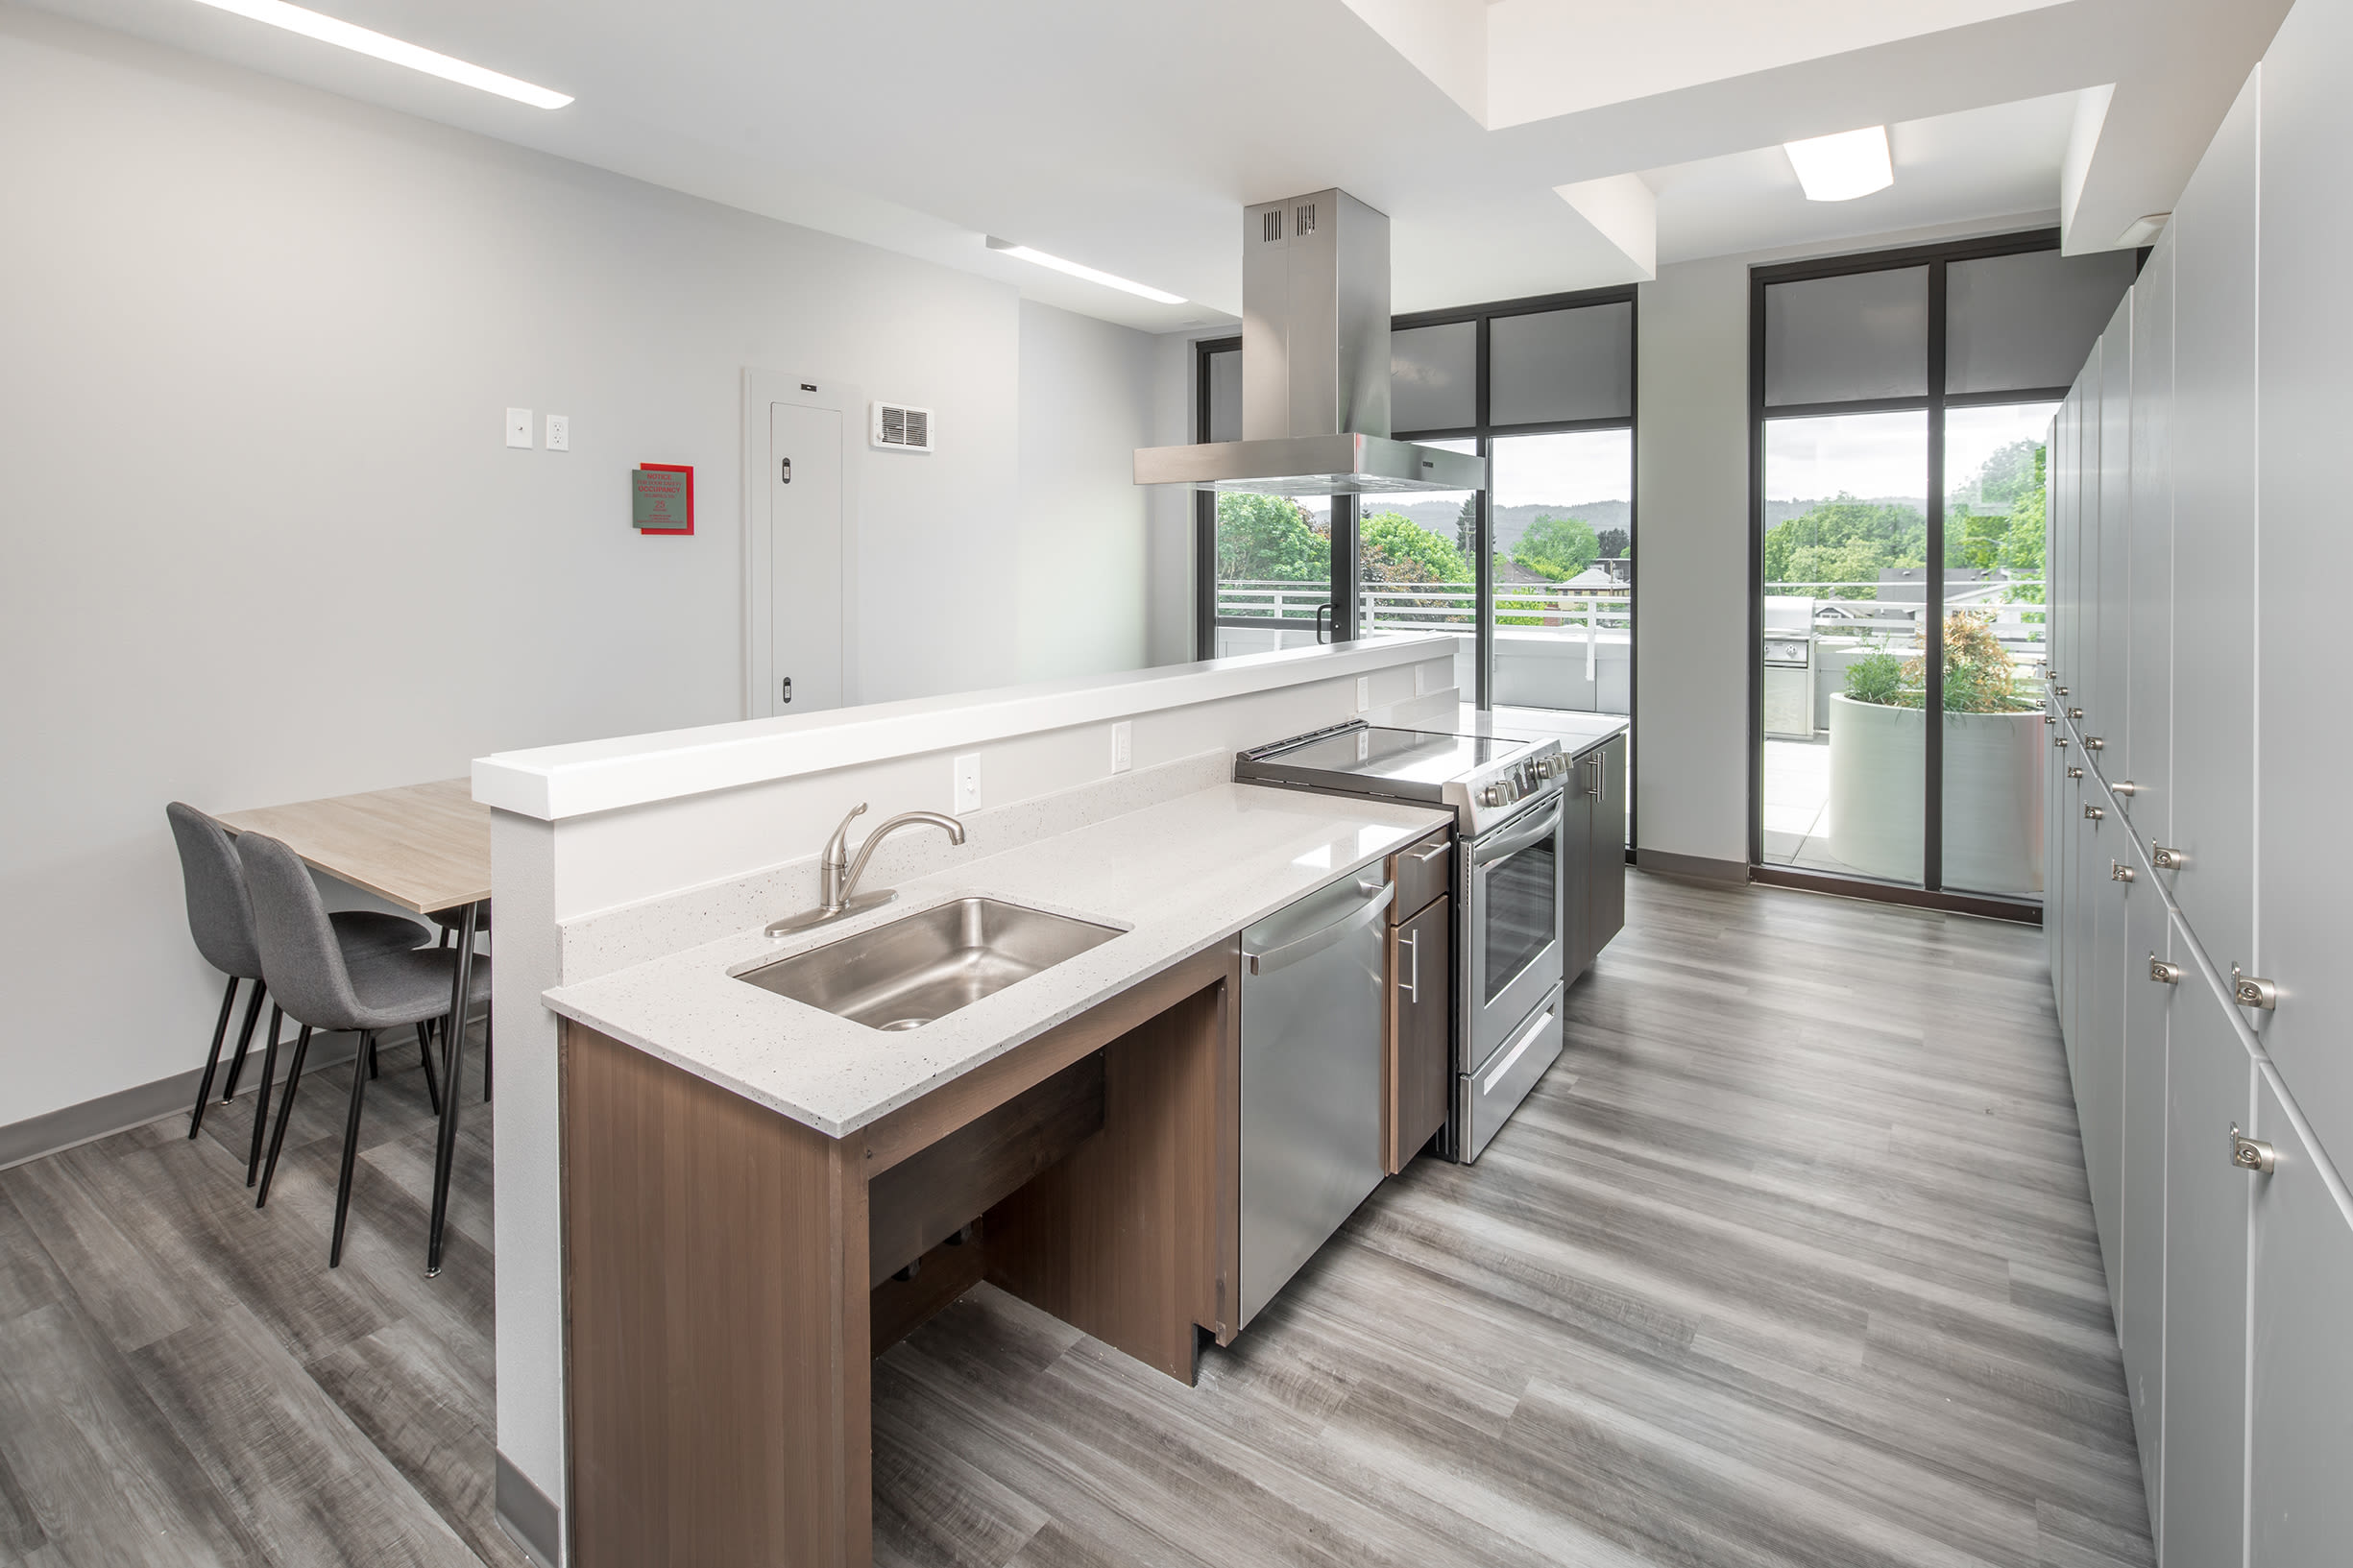 Another view of the community kitchen at Ascend in Portland, OR